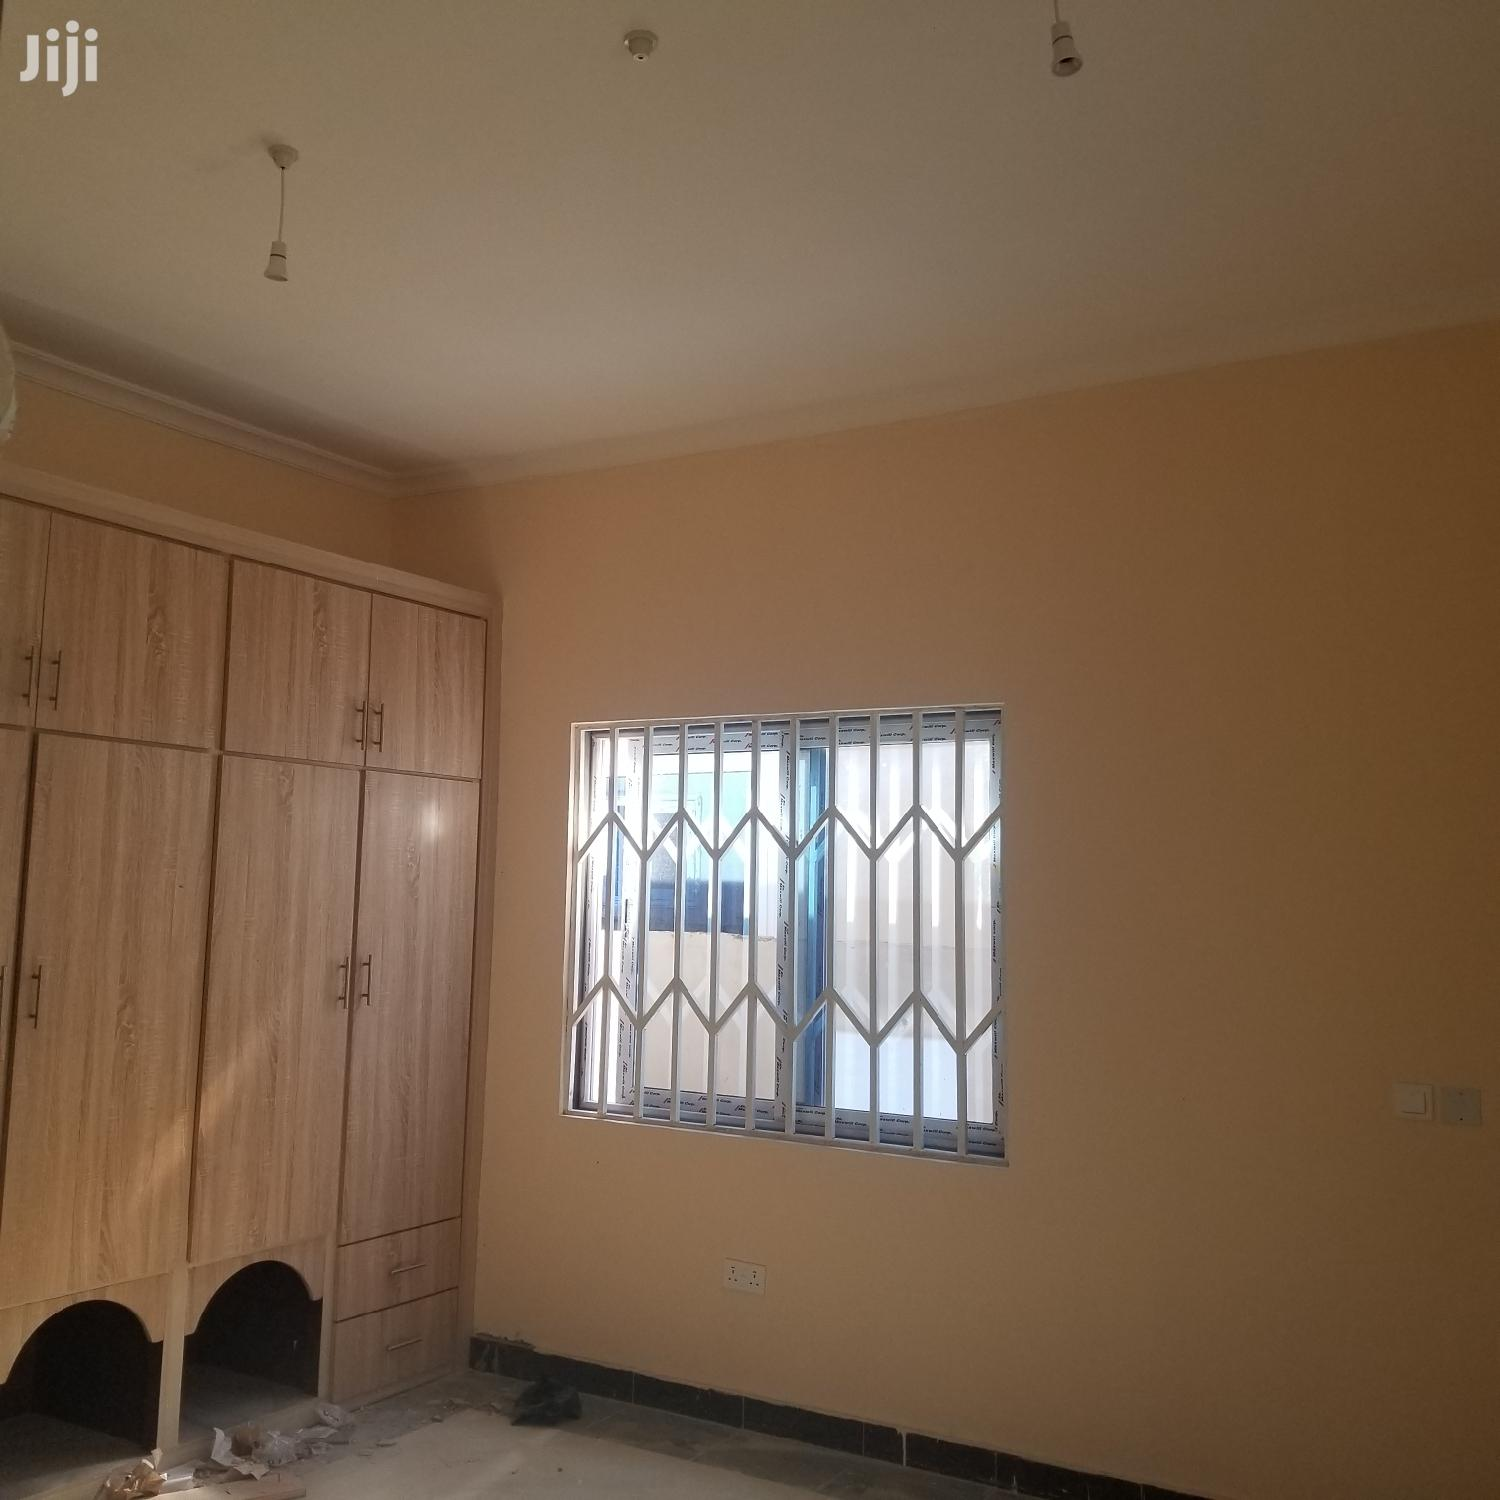 Brand New 3 Bedroom House For Sale   Houses & Apartments For Sale for sale in Tema Metropolitan, Greater Accra, Ghana